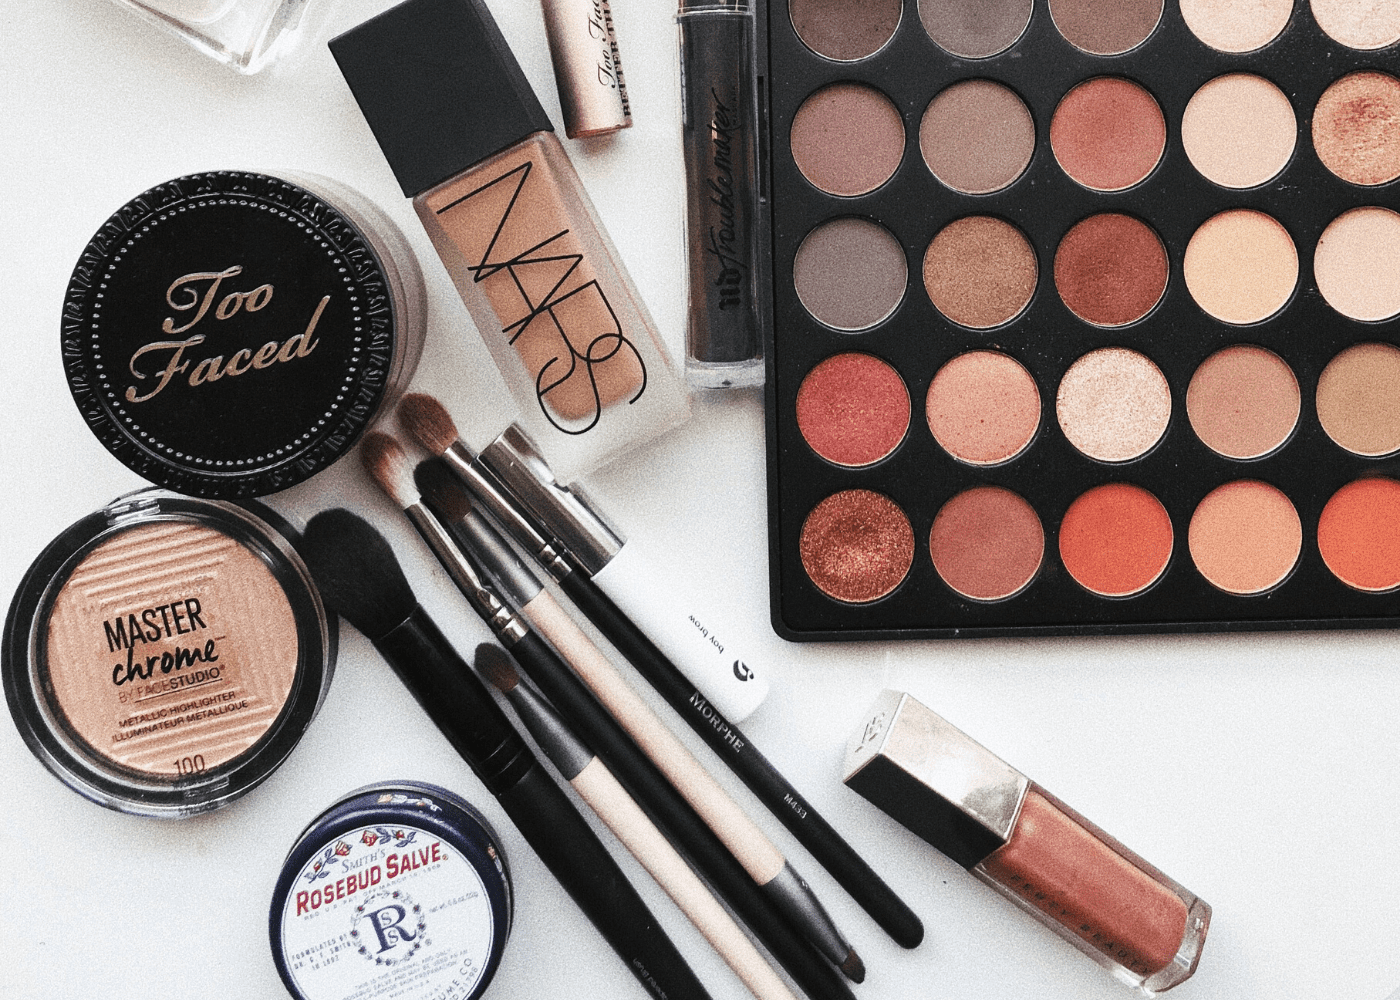 Are you a certified beauty junkie? You should have these makeup stores on your radar